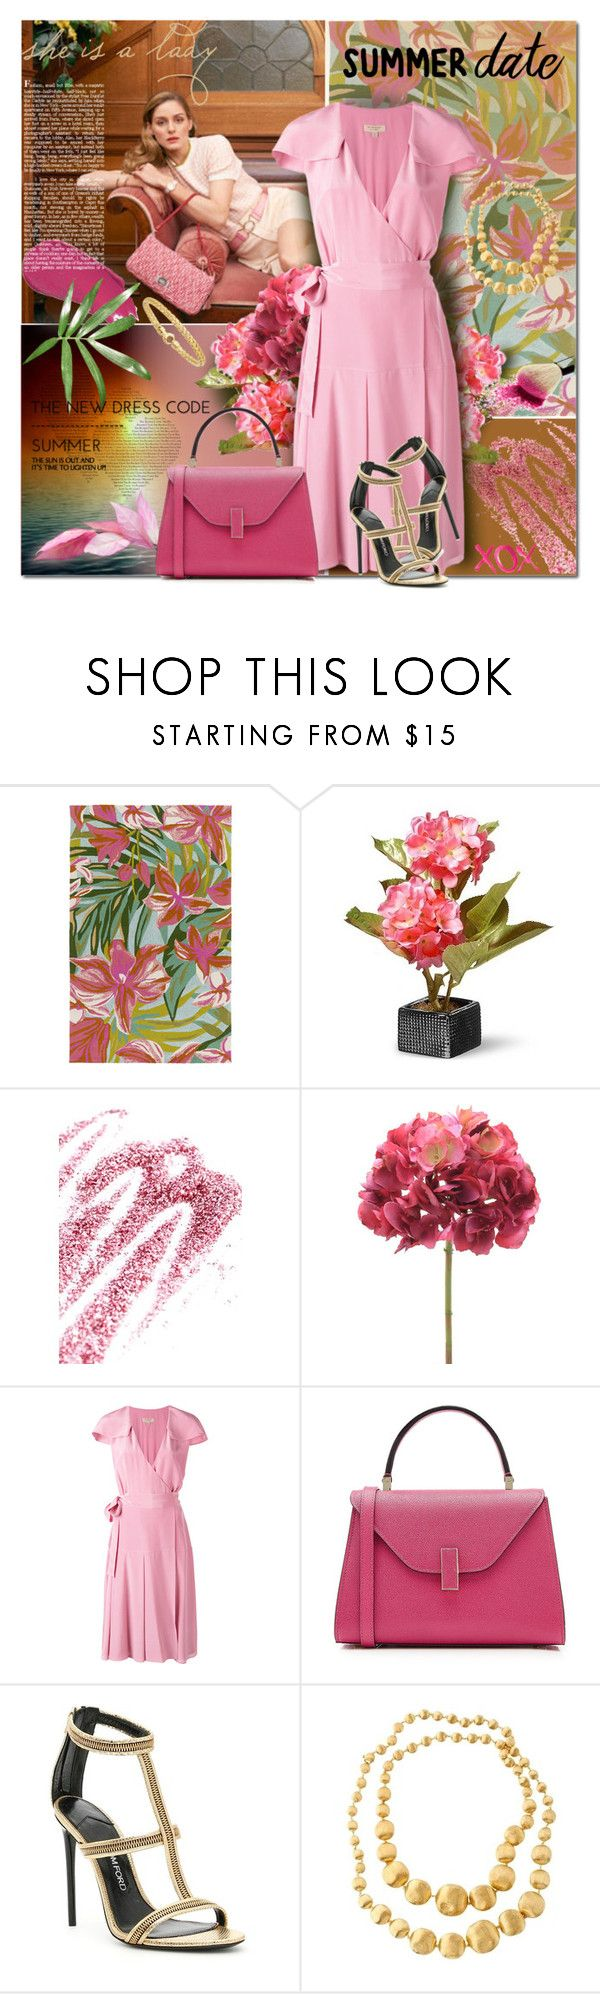 """""""Untitled #1922"""" by elena-777s ❤ liked on Polyvore featuring Joshi, Surya, National Tree Company, Obsessive Compulsive Cosmetics, Burberry, Valextra, GALA, Lumene, Tom Ford and Marco Bicego"""